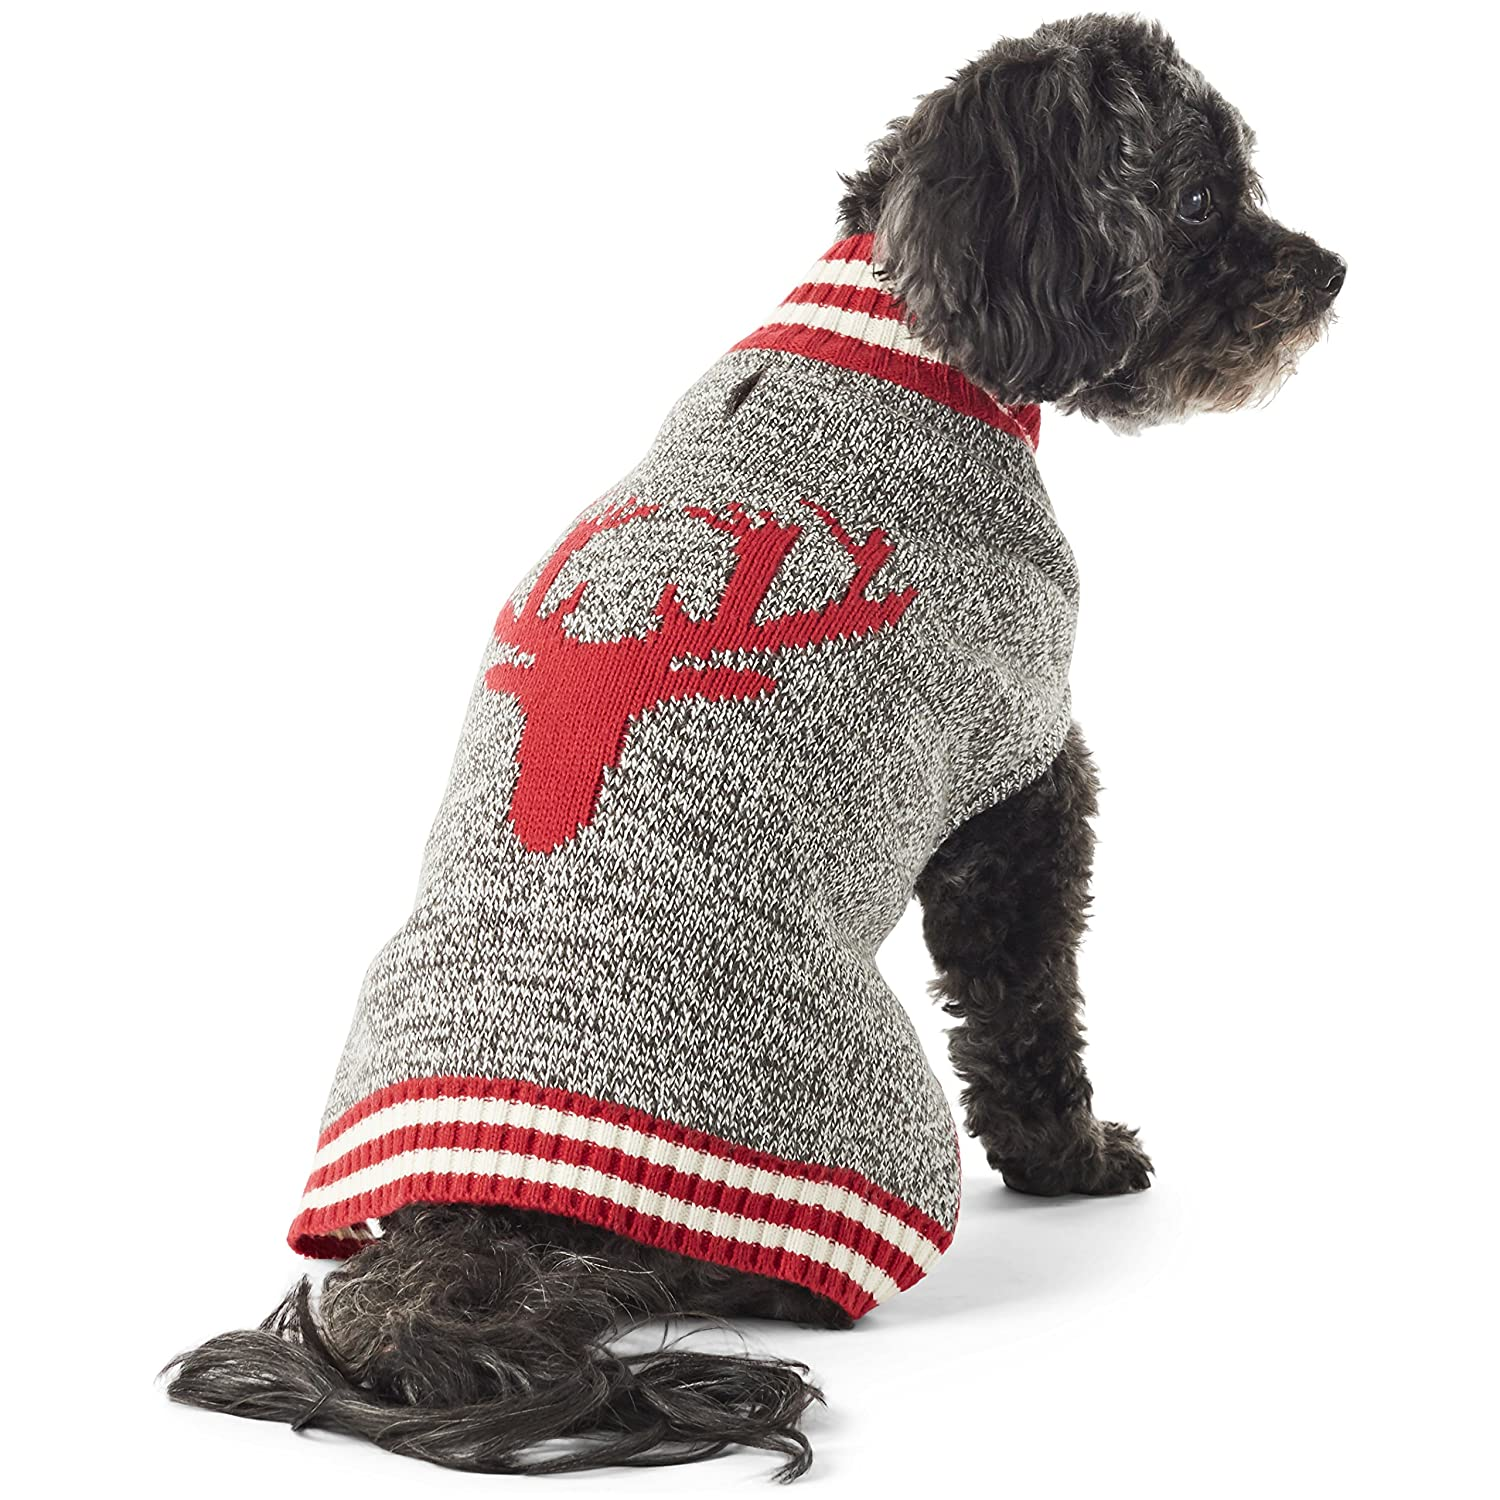 Cranberry Red XL Cranberry Red XL Hotel Doggy Reindeer Mock Neck Dog Sweater   Cranberry Red Dog Clothing XL